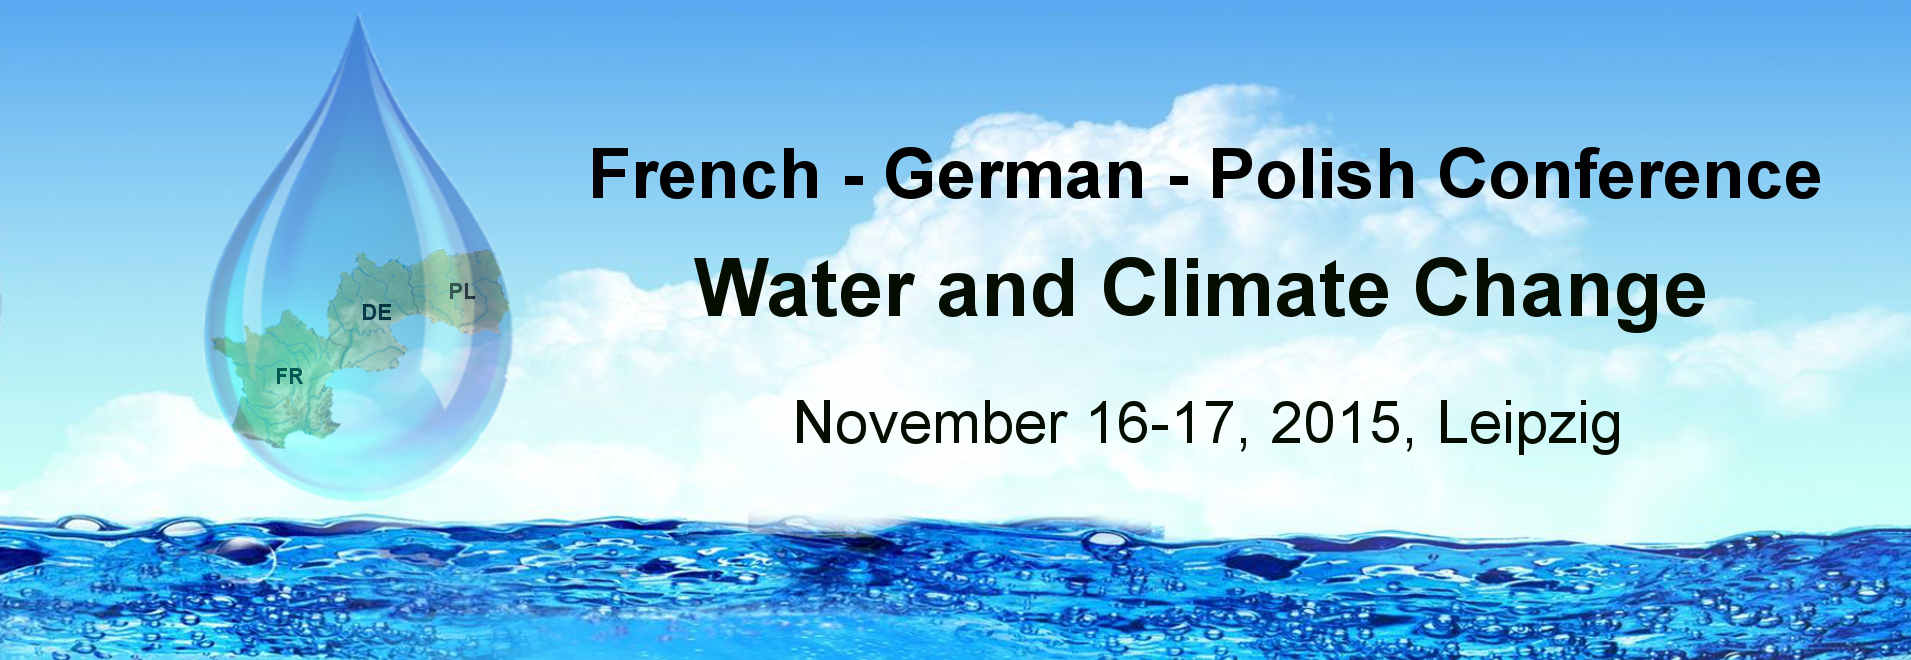 Water and Climate Change Conference